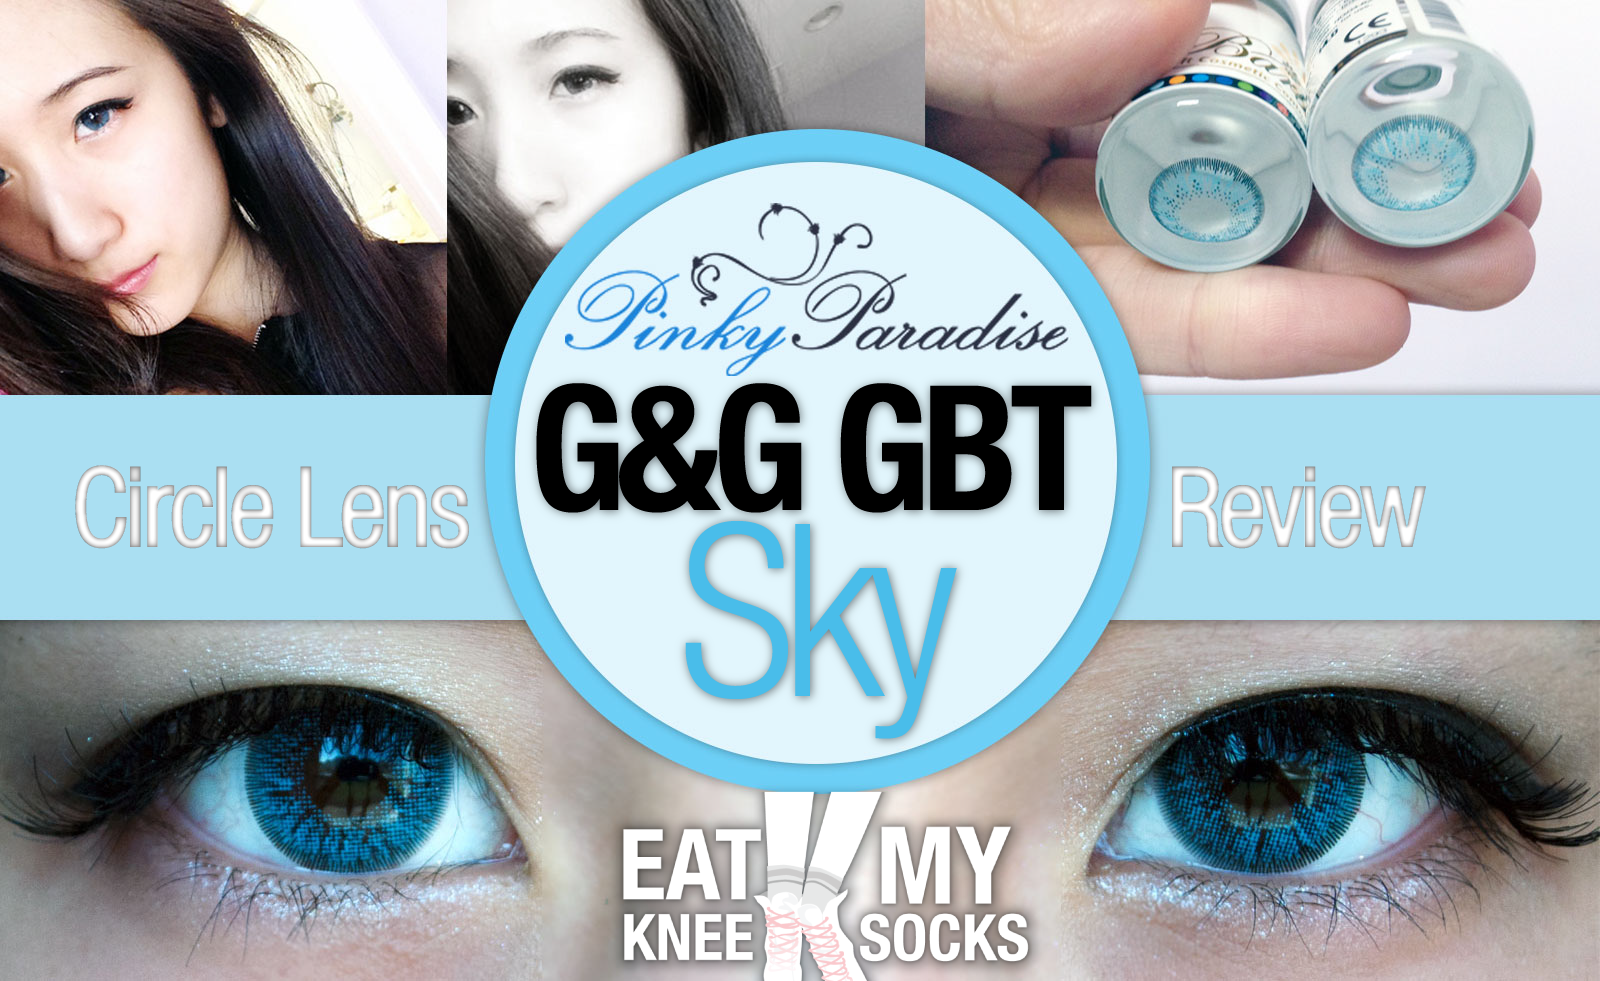 Circle lens review for the G&G GBT Sky blue lenses from Pinky Paradise, perfect for everyday occasions or special events such as Halloween!